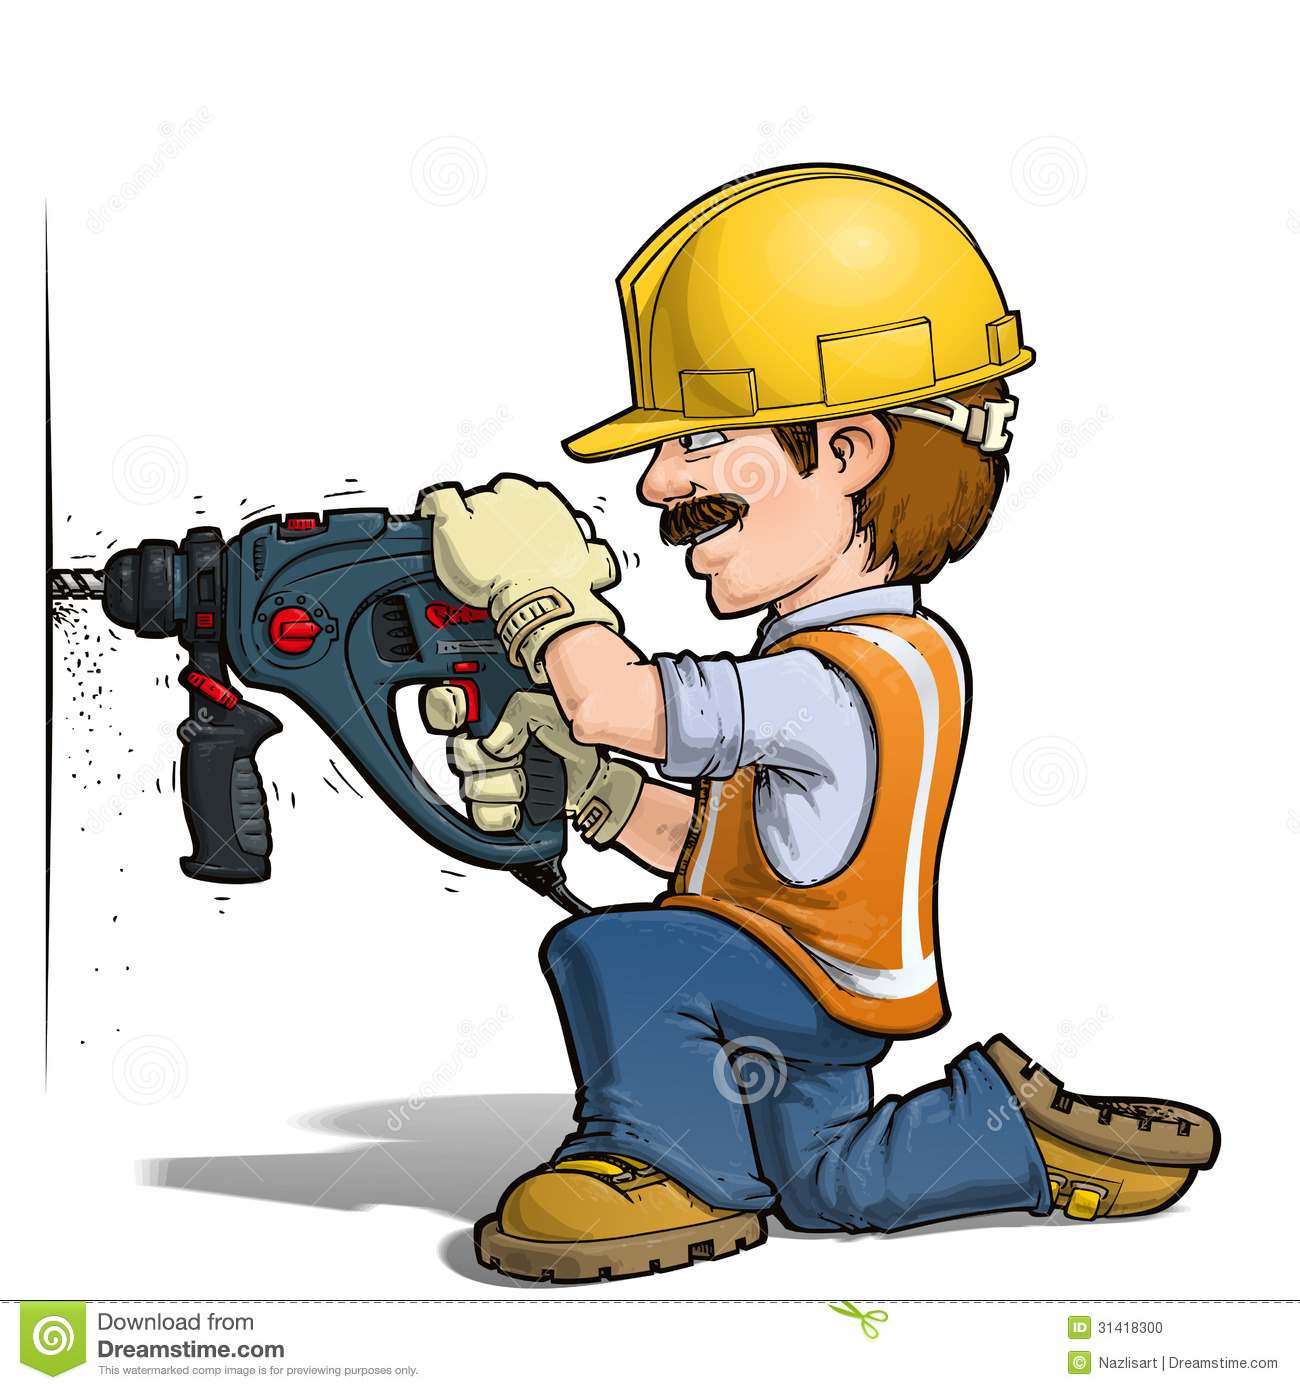 image construction workers nailling cartoon illustration worker